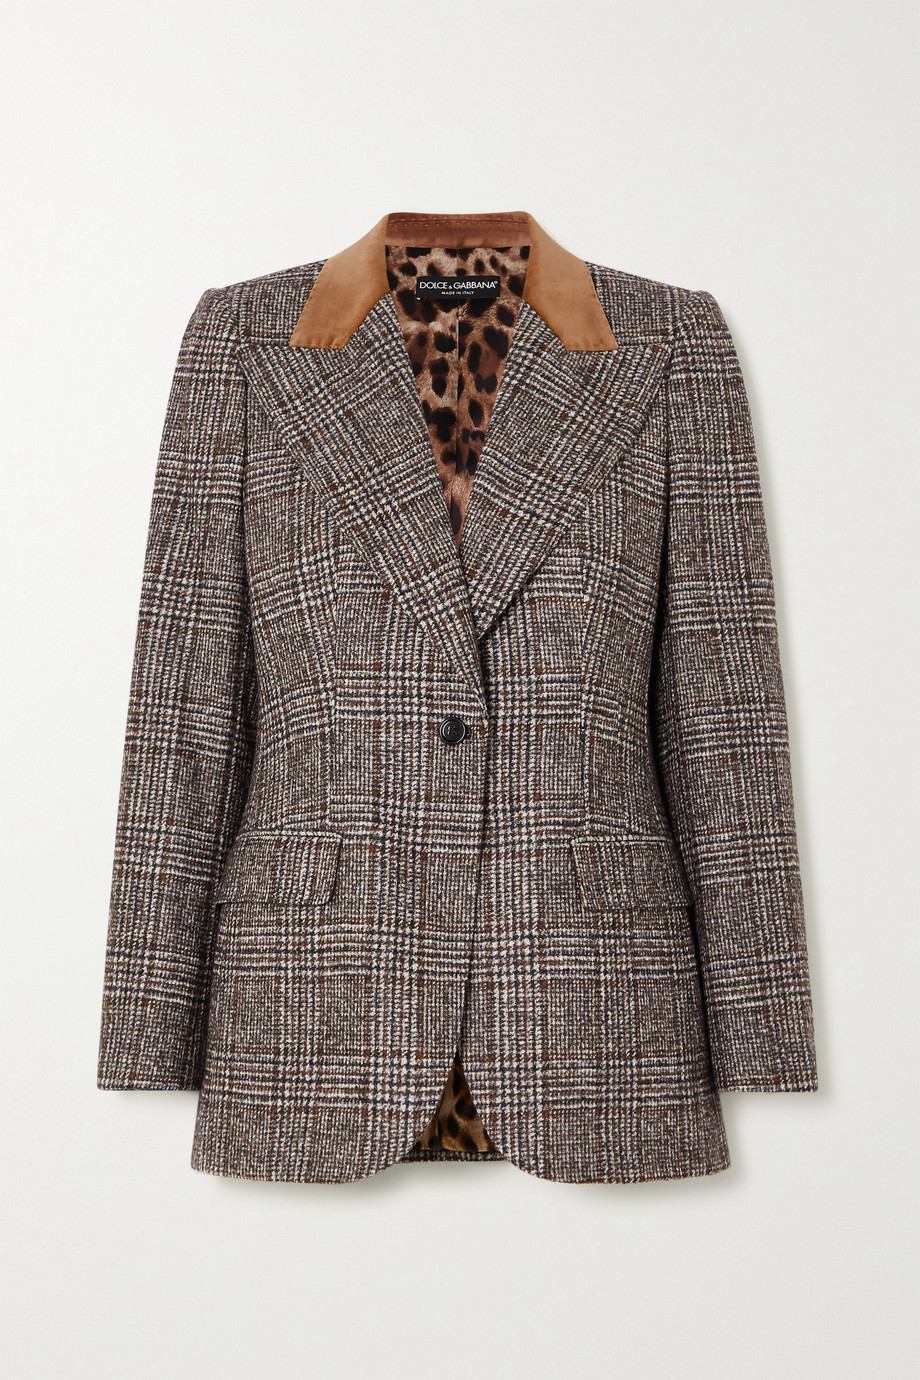 Dolce & Gabbana Velvet-trimmed Prince of Wales checked wool-blend blazer